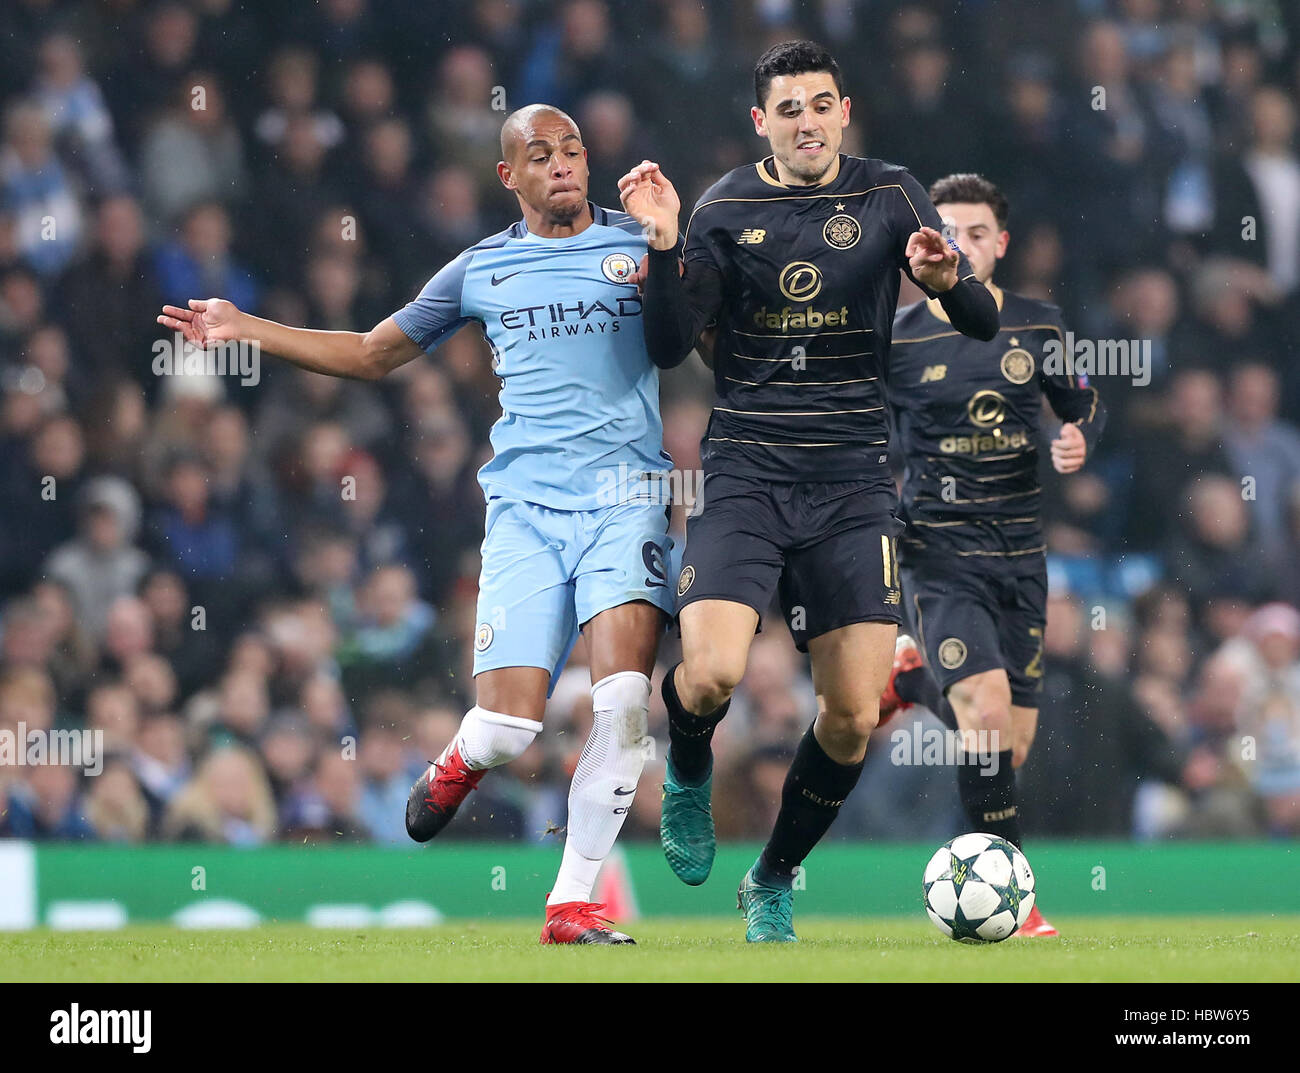 Manchester City's Fernando (left) and Celtic's Tom Rogic battle for the ball during the UEFA Champions League, - Stock Image